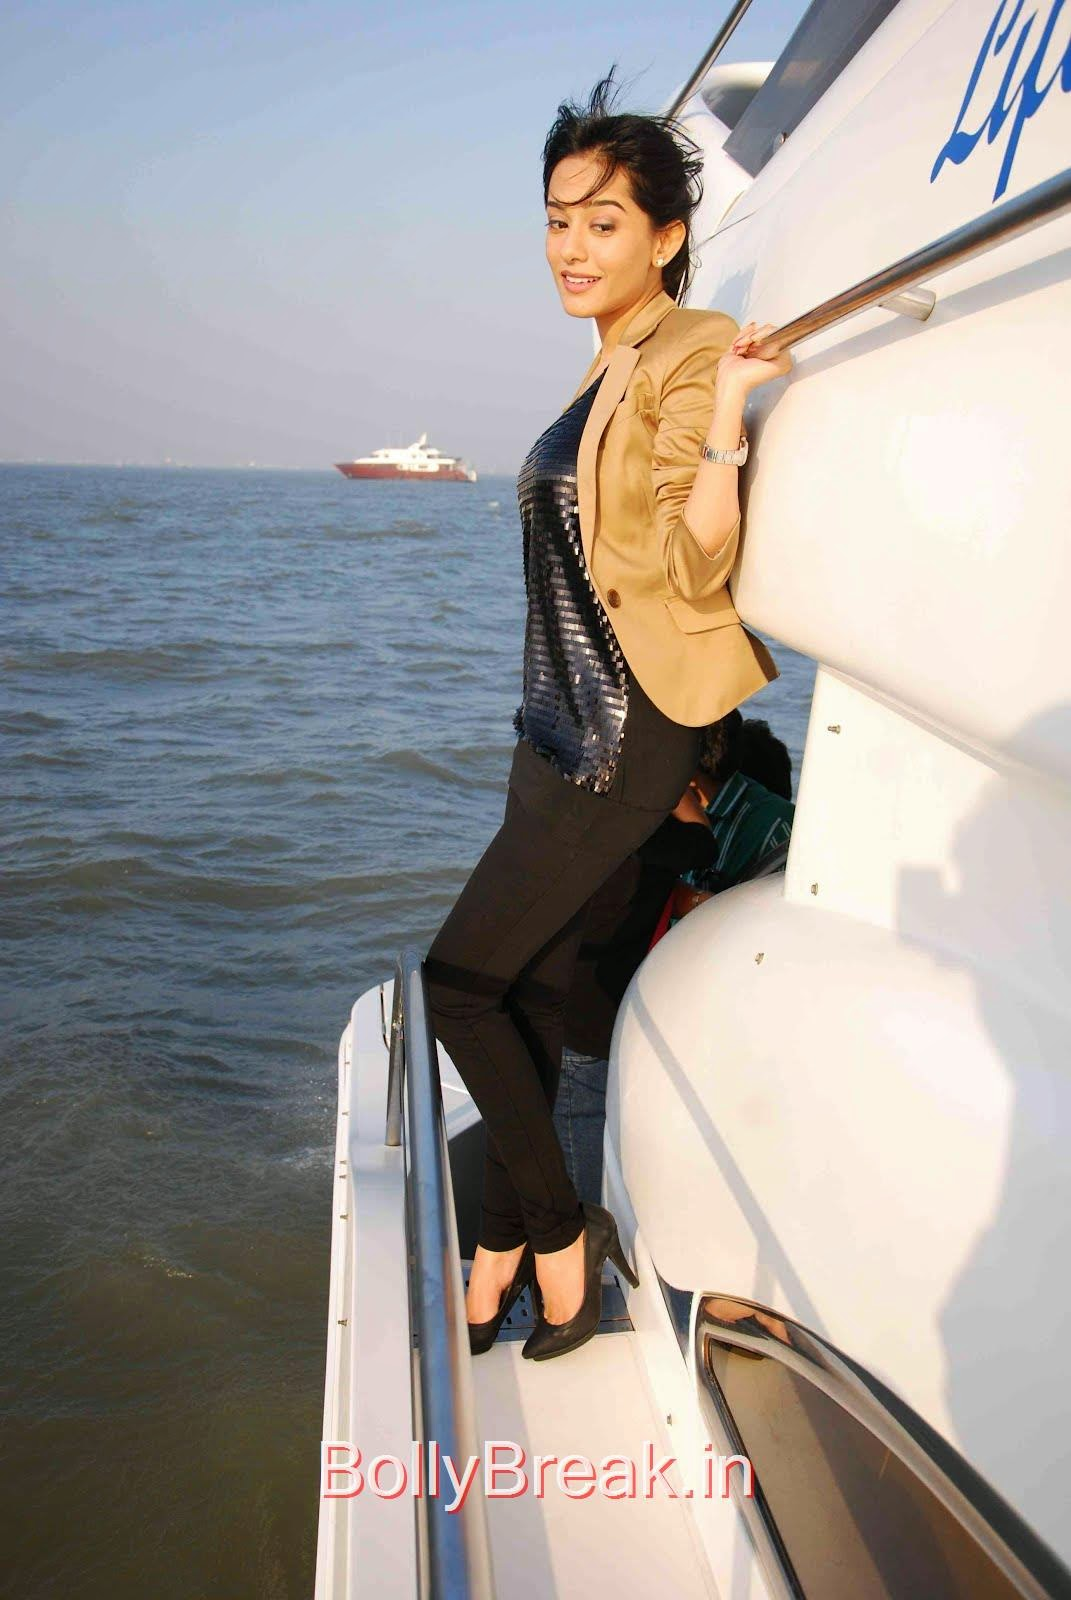 [IMG] [/IMG], Amrita Rao Hot Pics From Boat Photoshoot